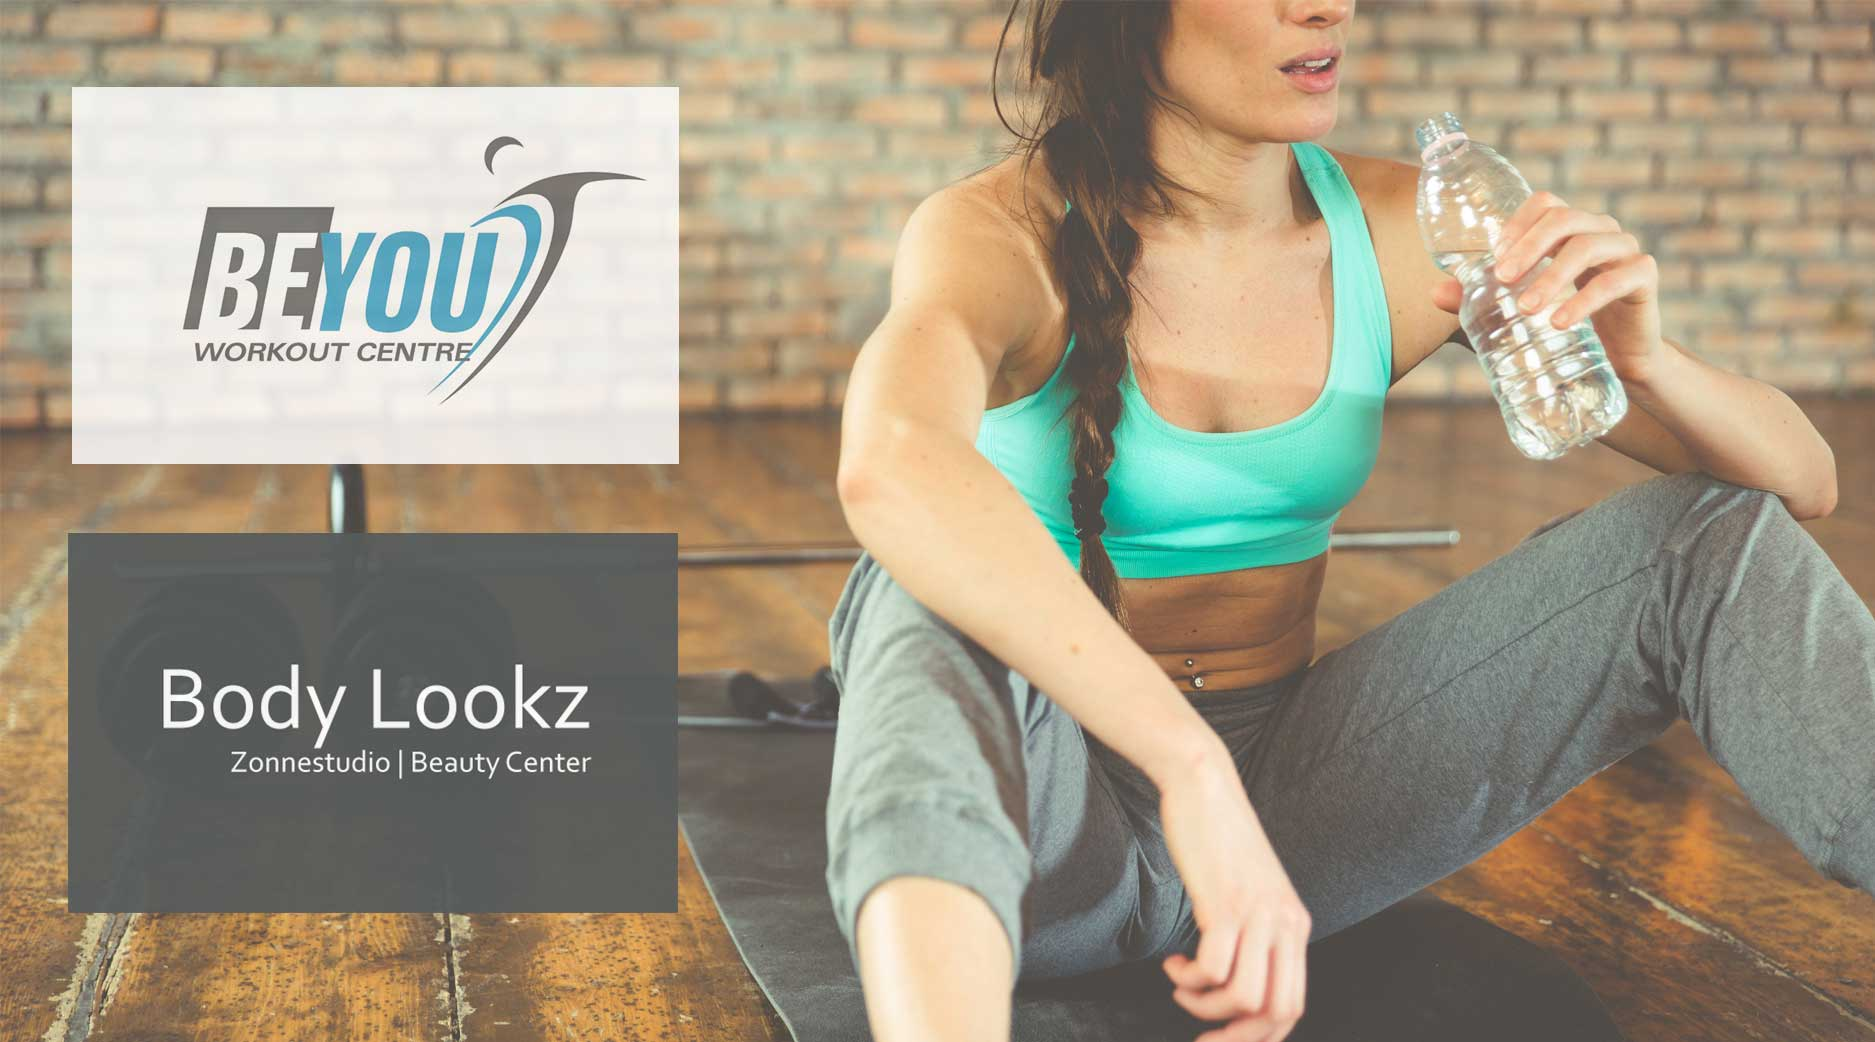 Samenwerking-Body-Lookz-Be-You-WorkoutCentre